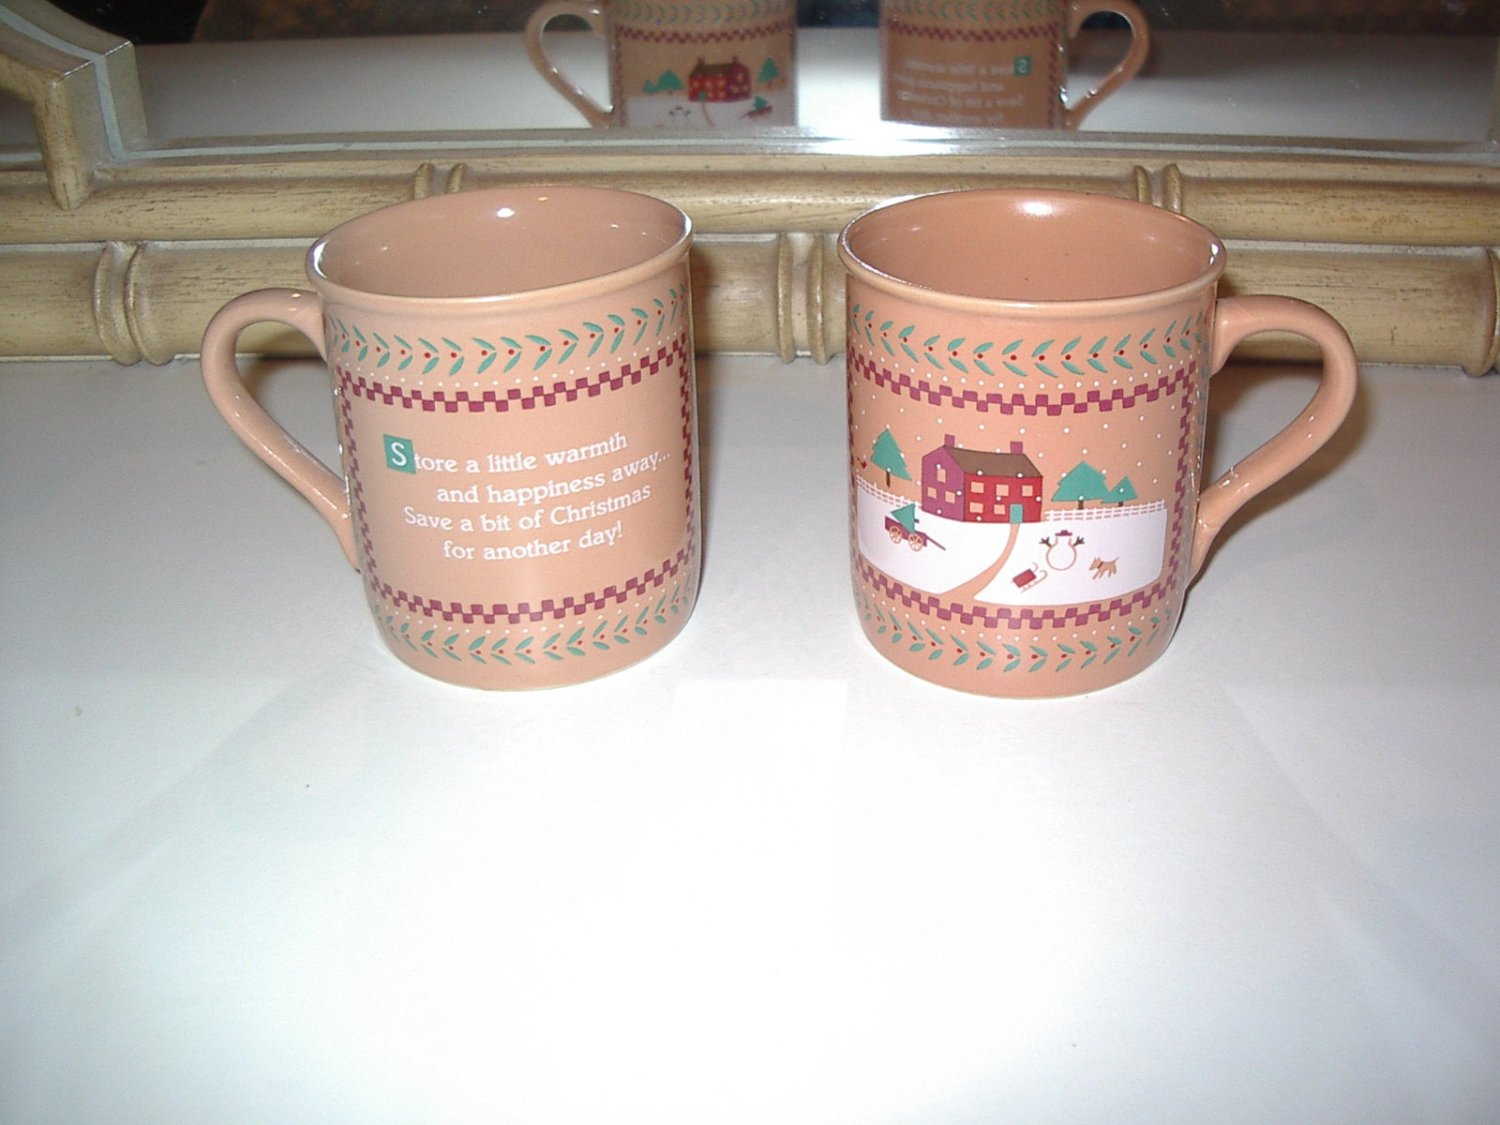 SET of 2 Vintage HALLMARK Warmth and Happiness Christmas 8oz. Cups Mugs 1985